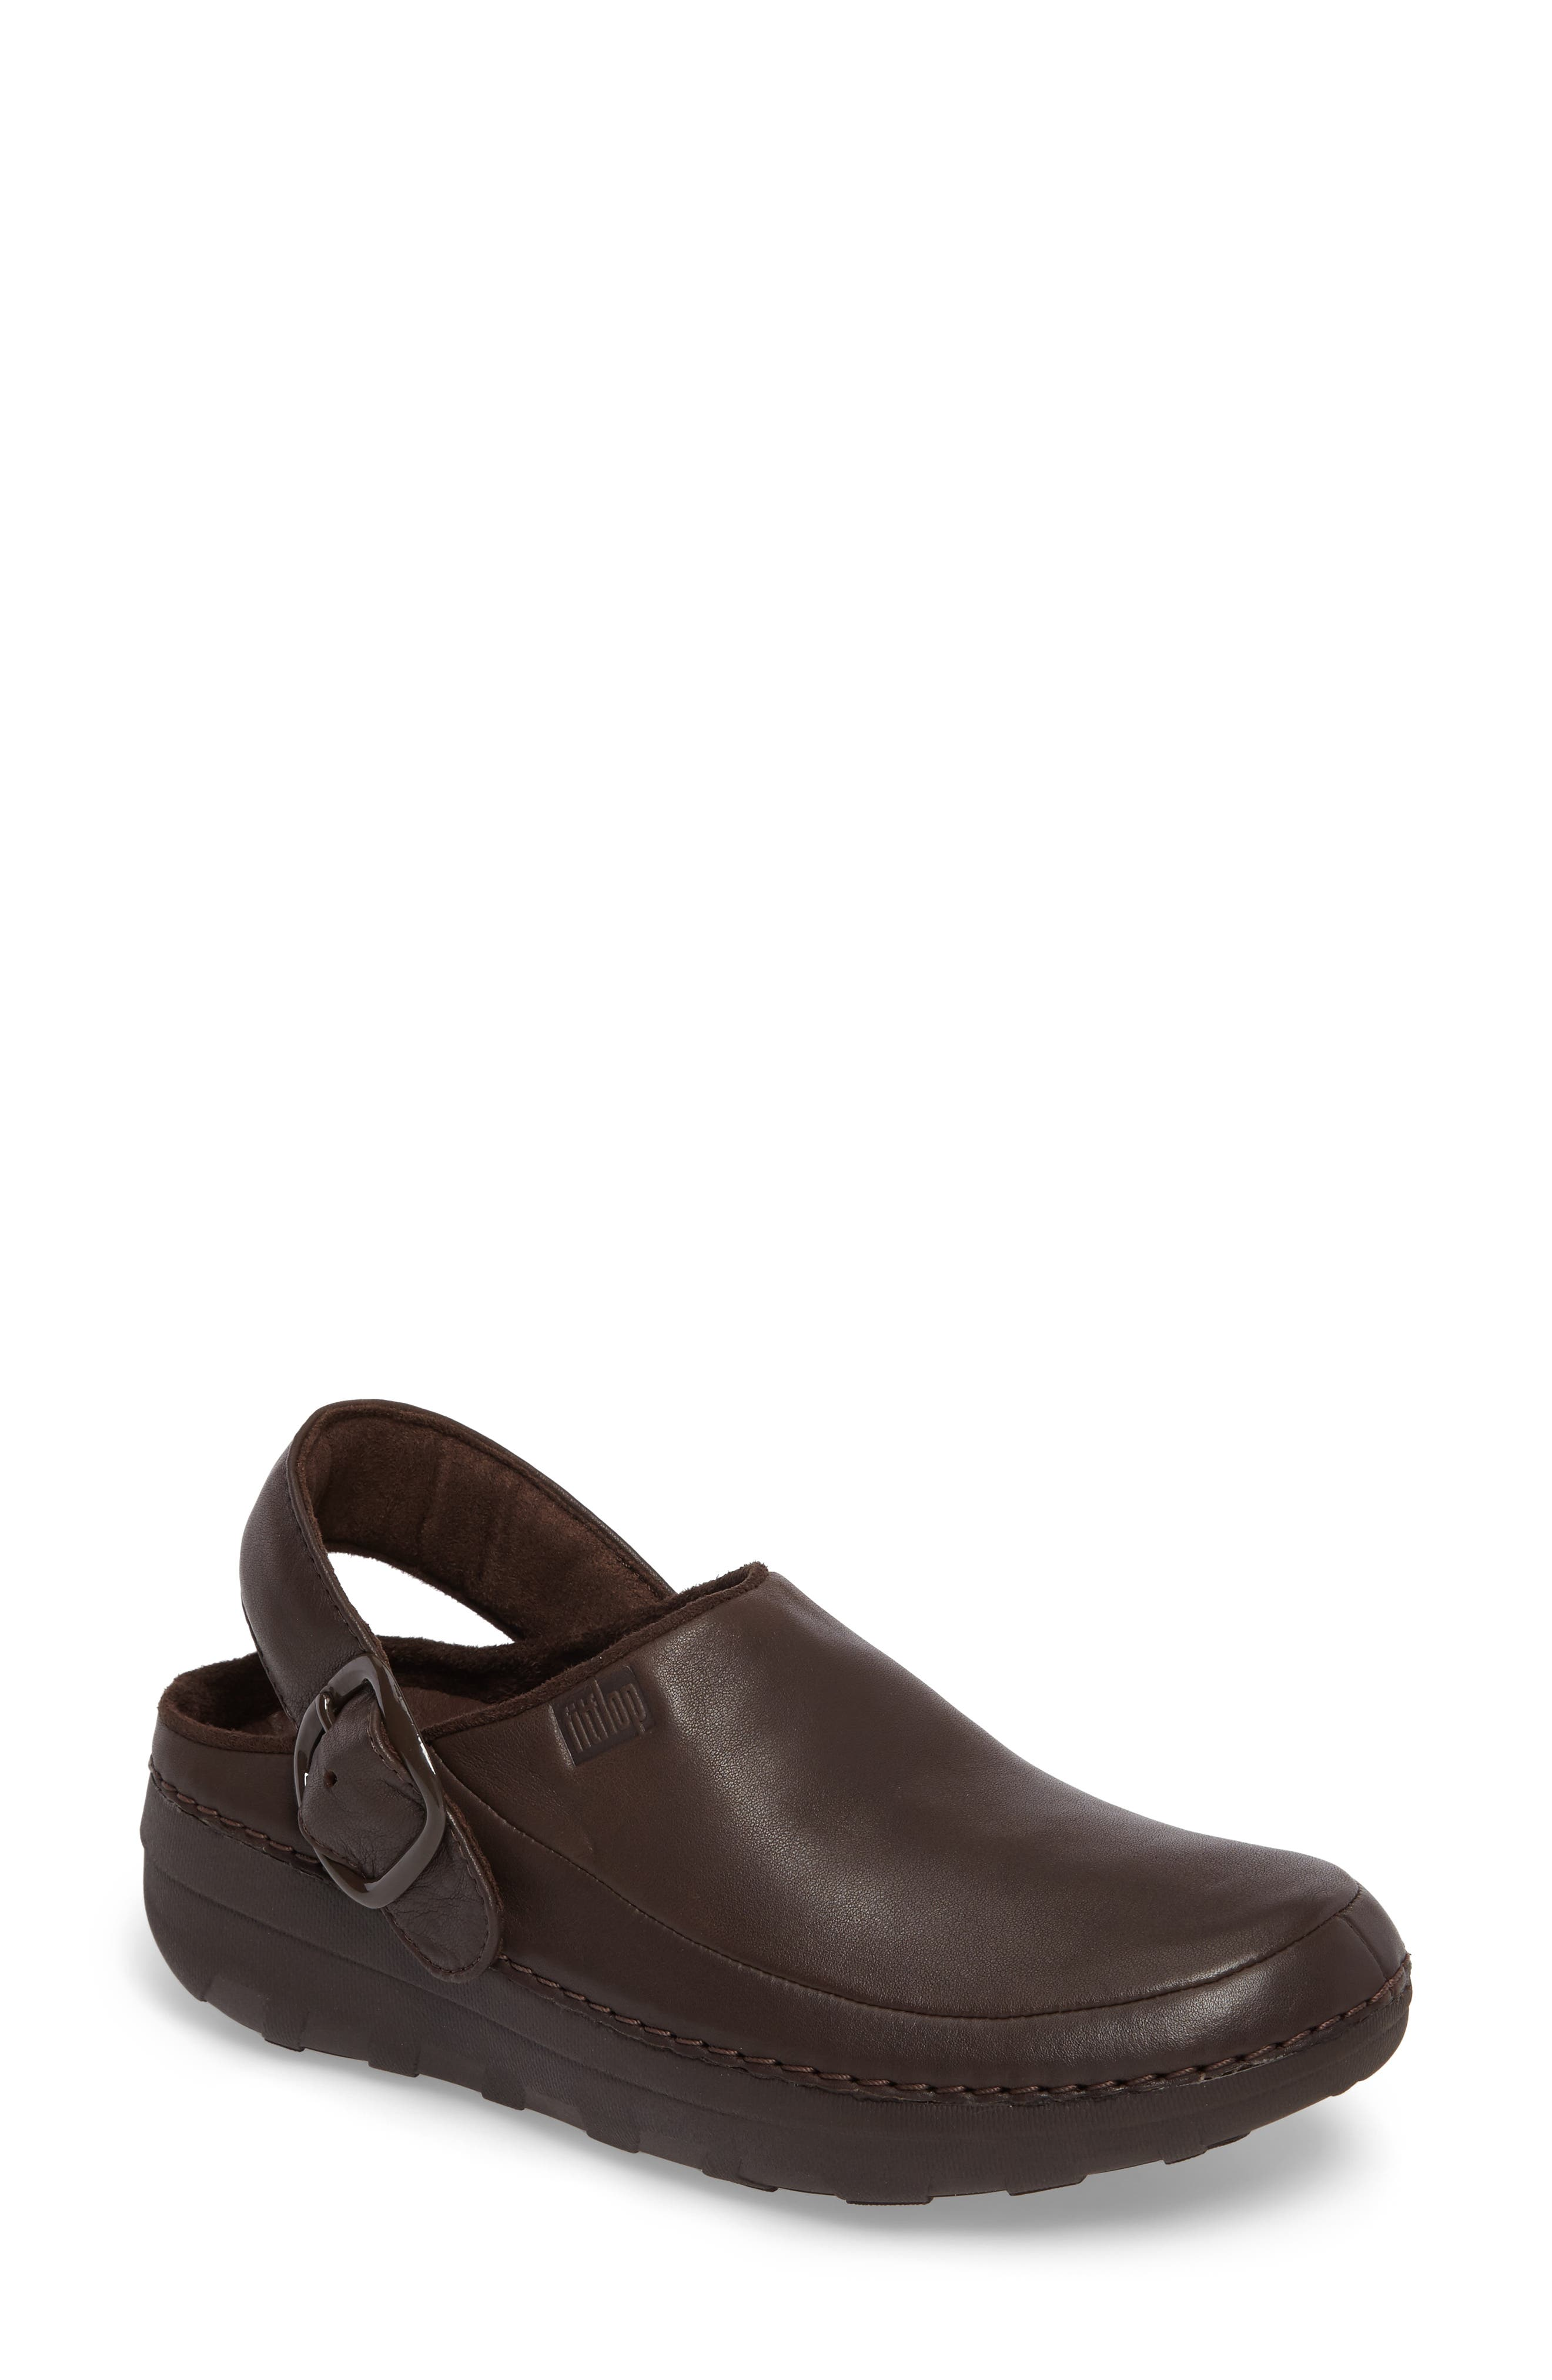 Gogh Pro - Superlight Clog,                             Main thumbnail 1, color,                             Chocolate Brown Leather